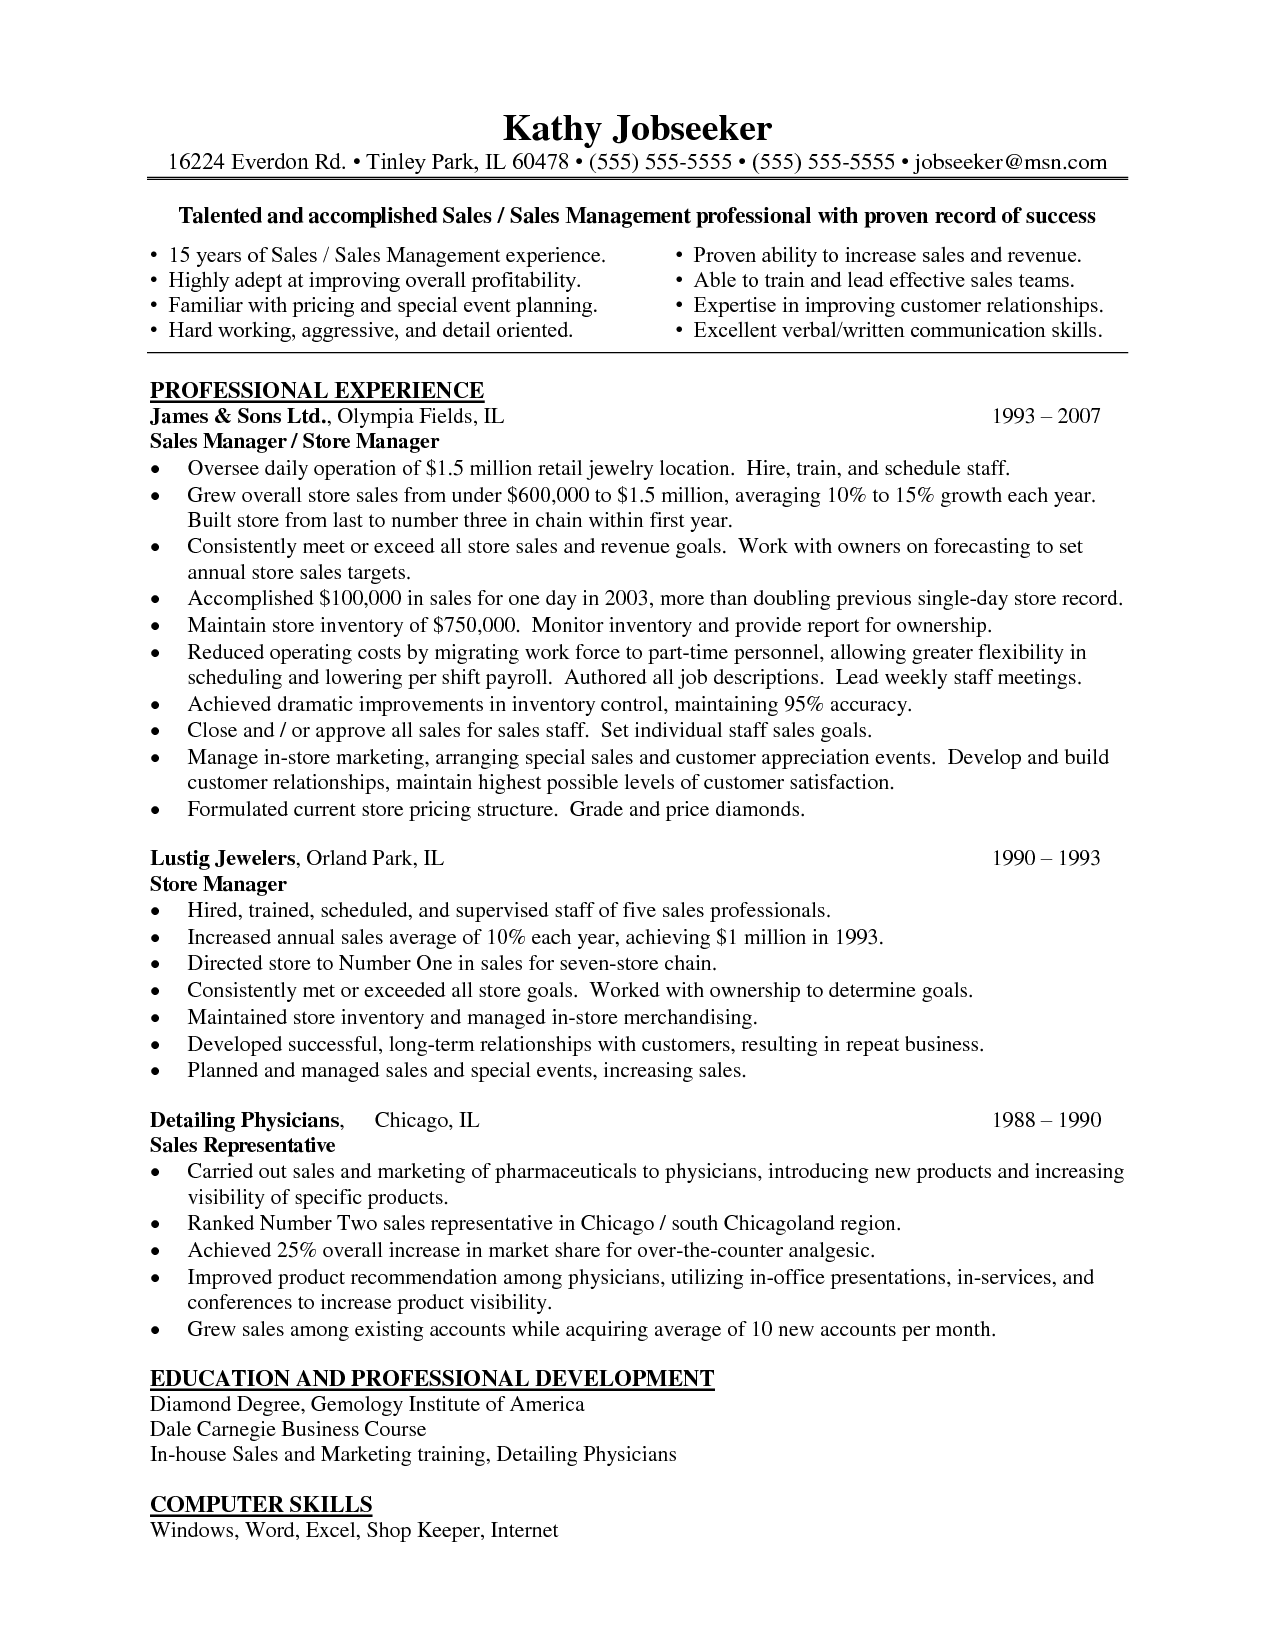 Resume Examples For Retail Store Manager | Sample Cover Letter For Retail  Management Job 4